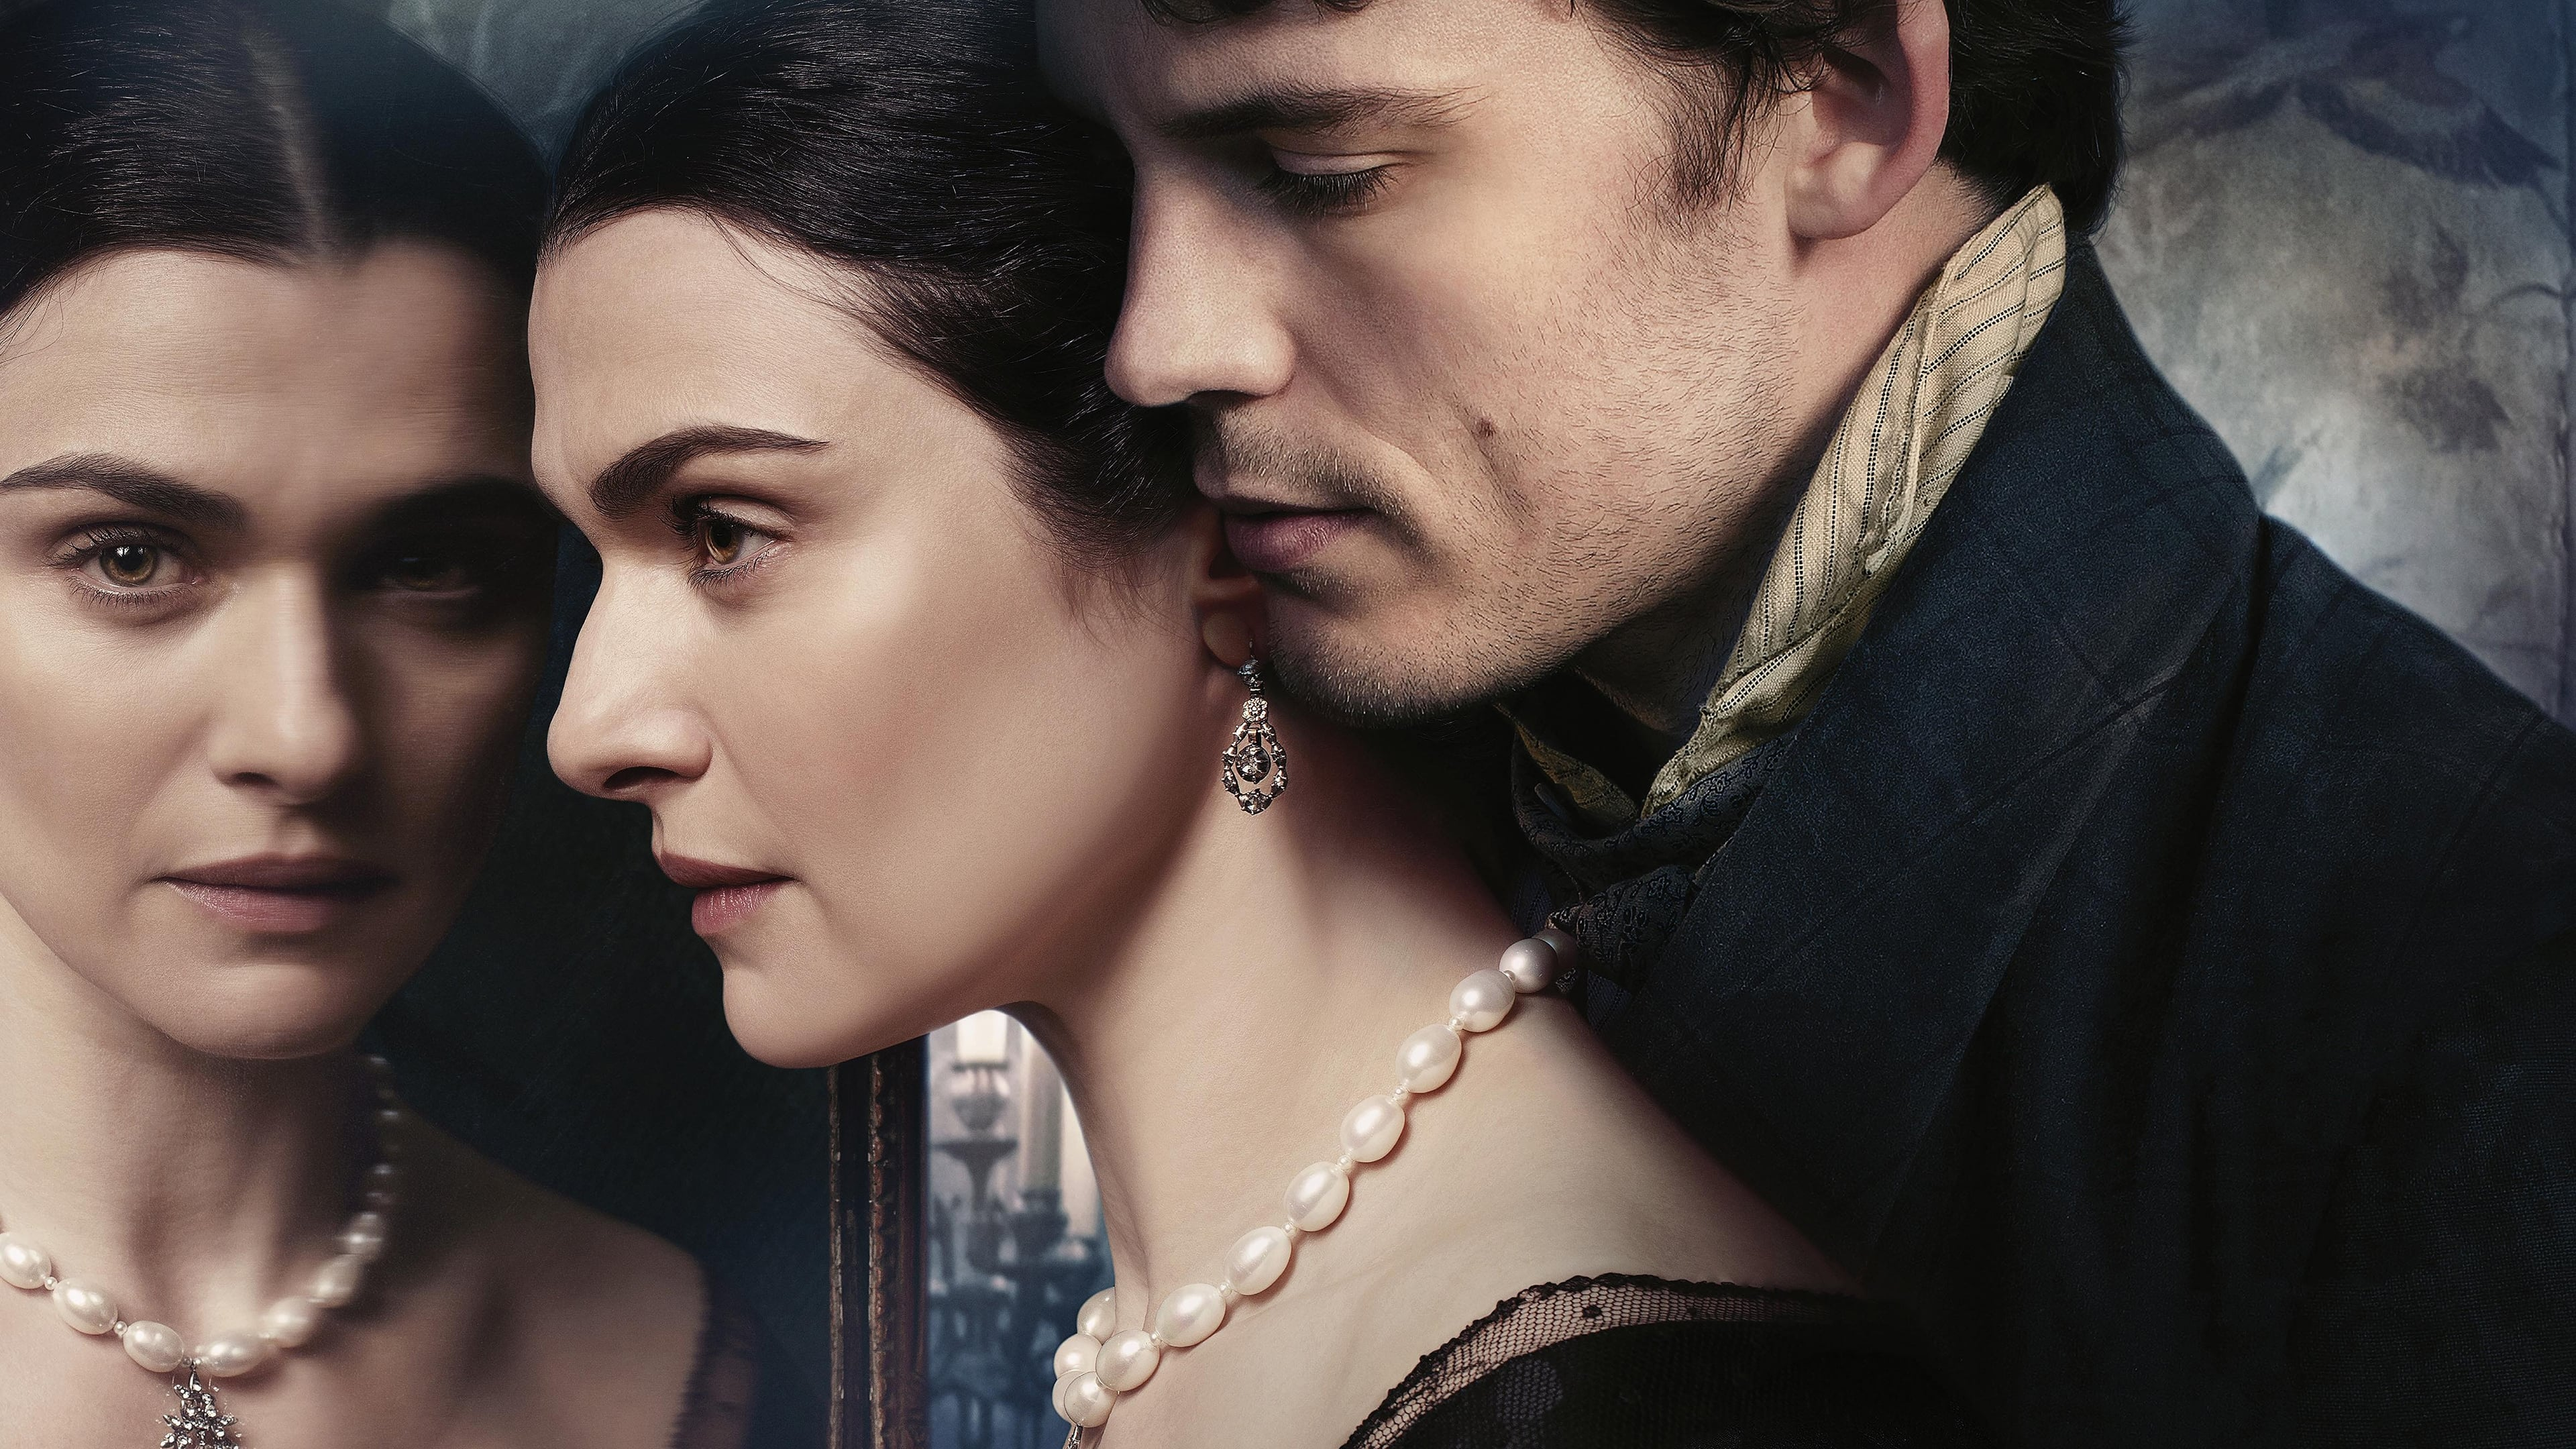 My Cousin Rachel 2017 Torrent 720p 1080p Torrentcounter